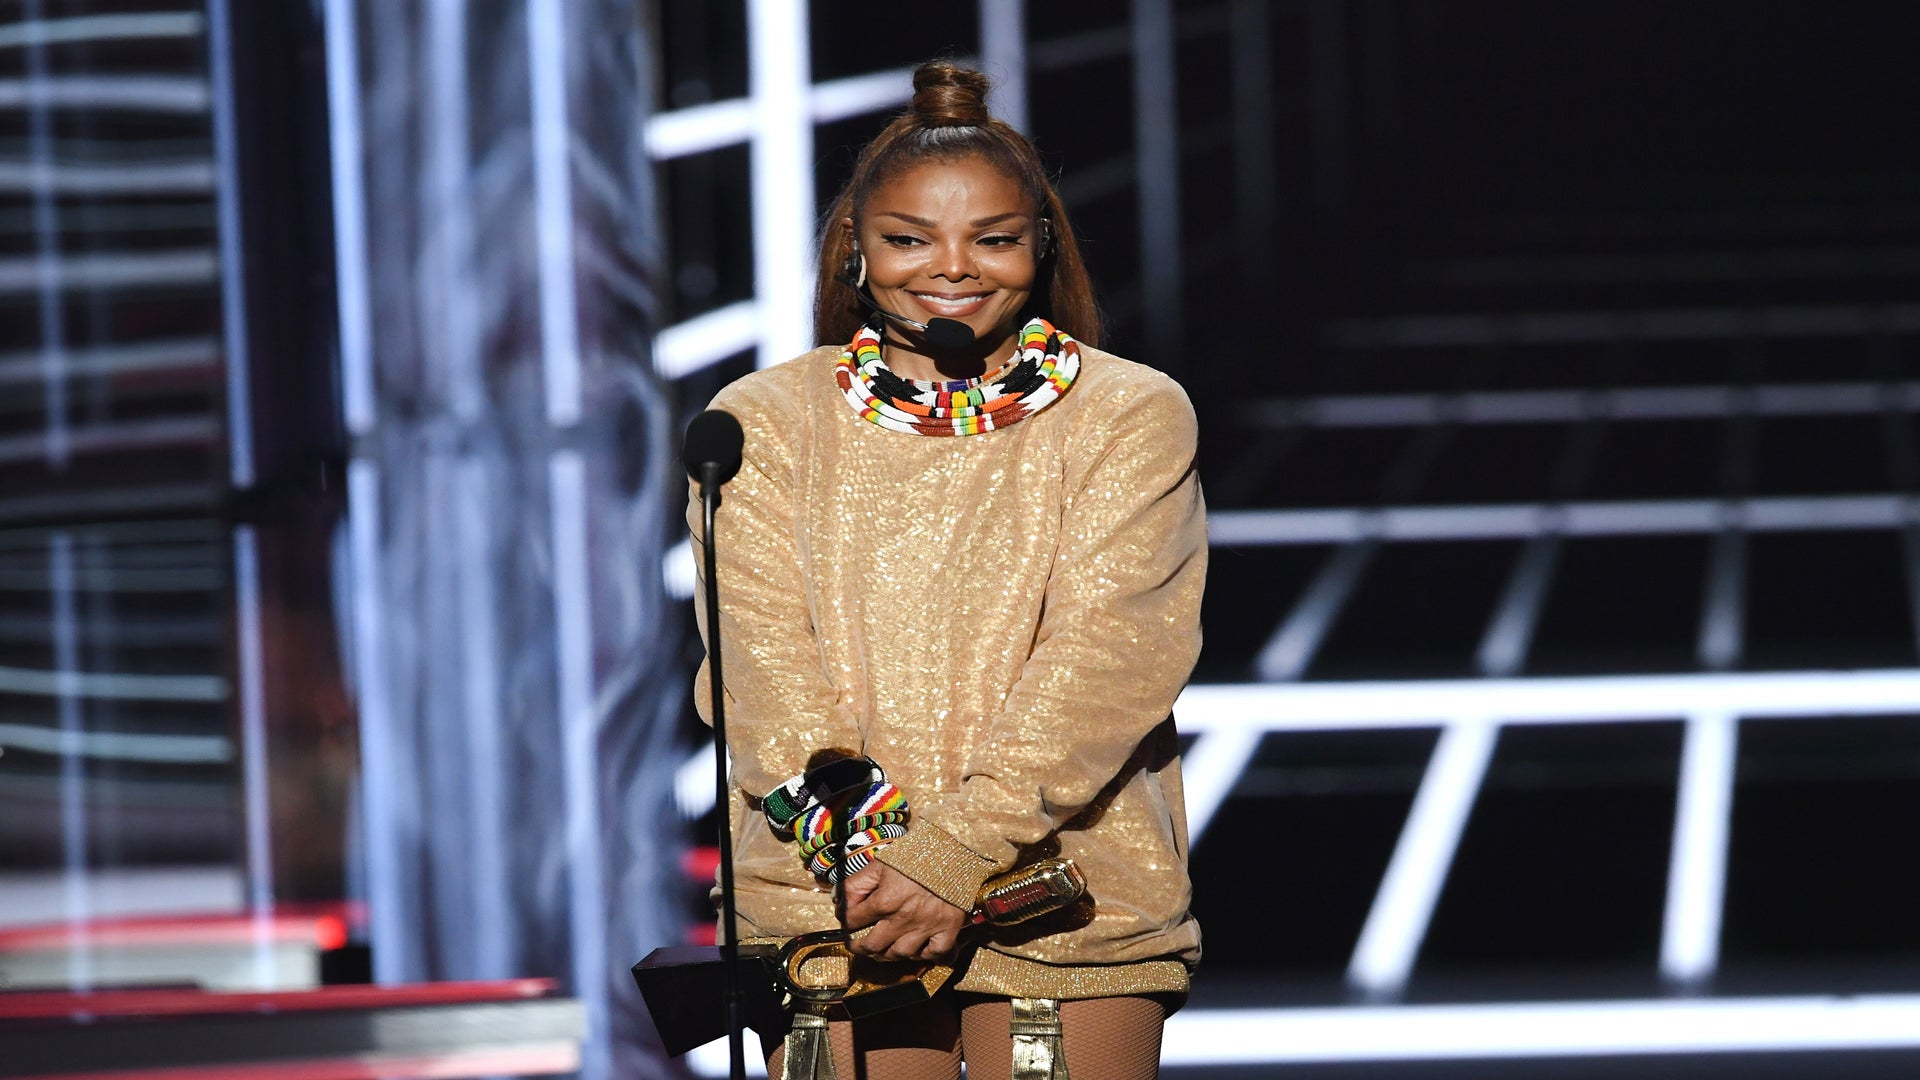 Janet Jackson's Epic Performance And Powerful Speech As The First Black Woman To Receive The Billboard Icon Award Was Right On Time